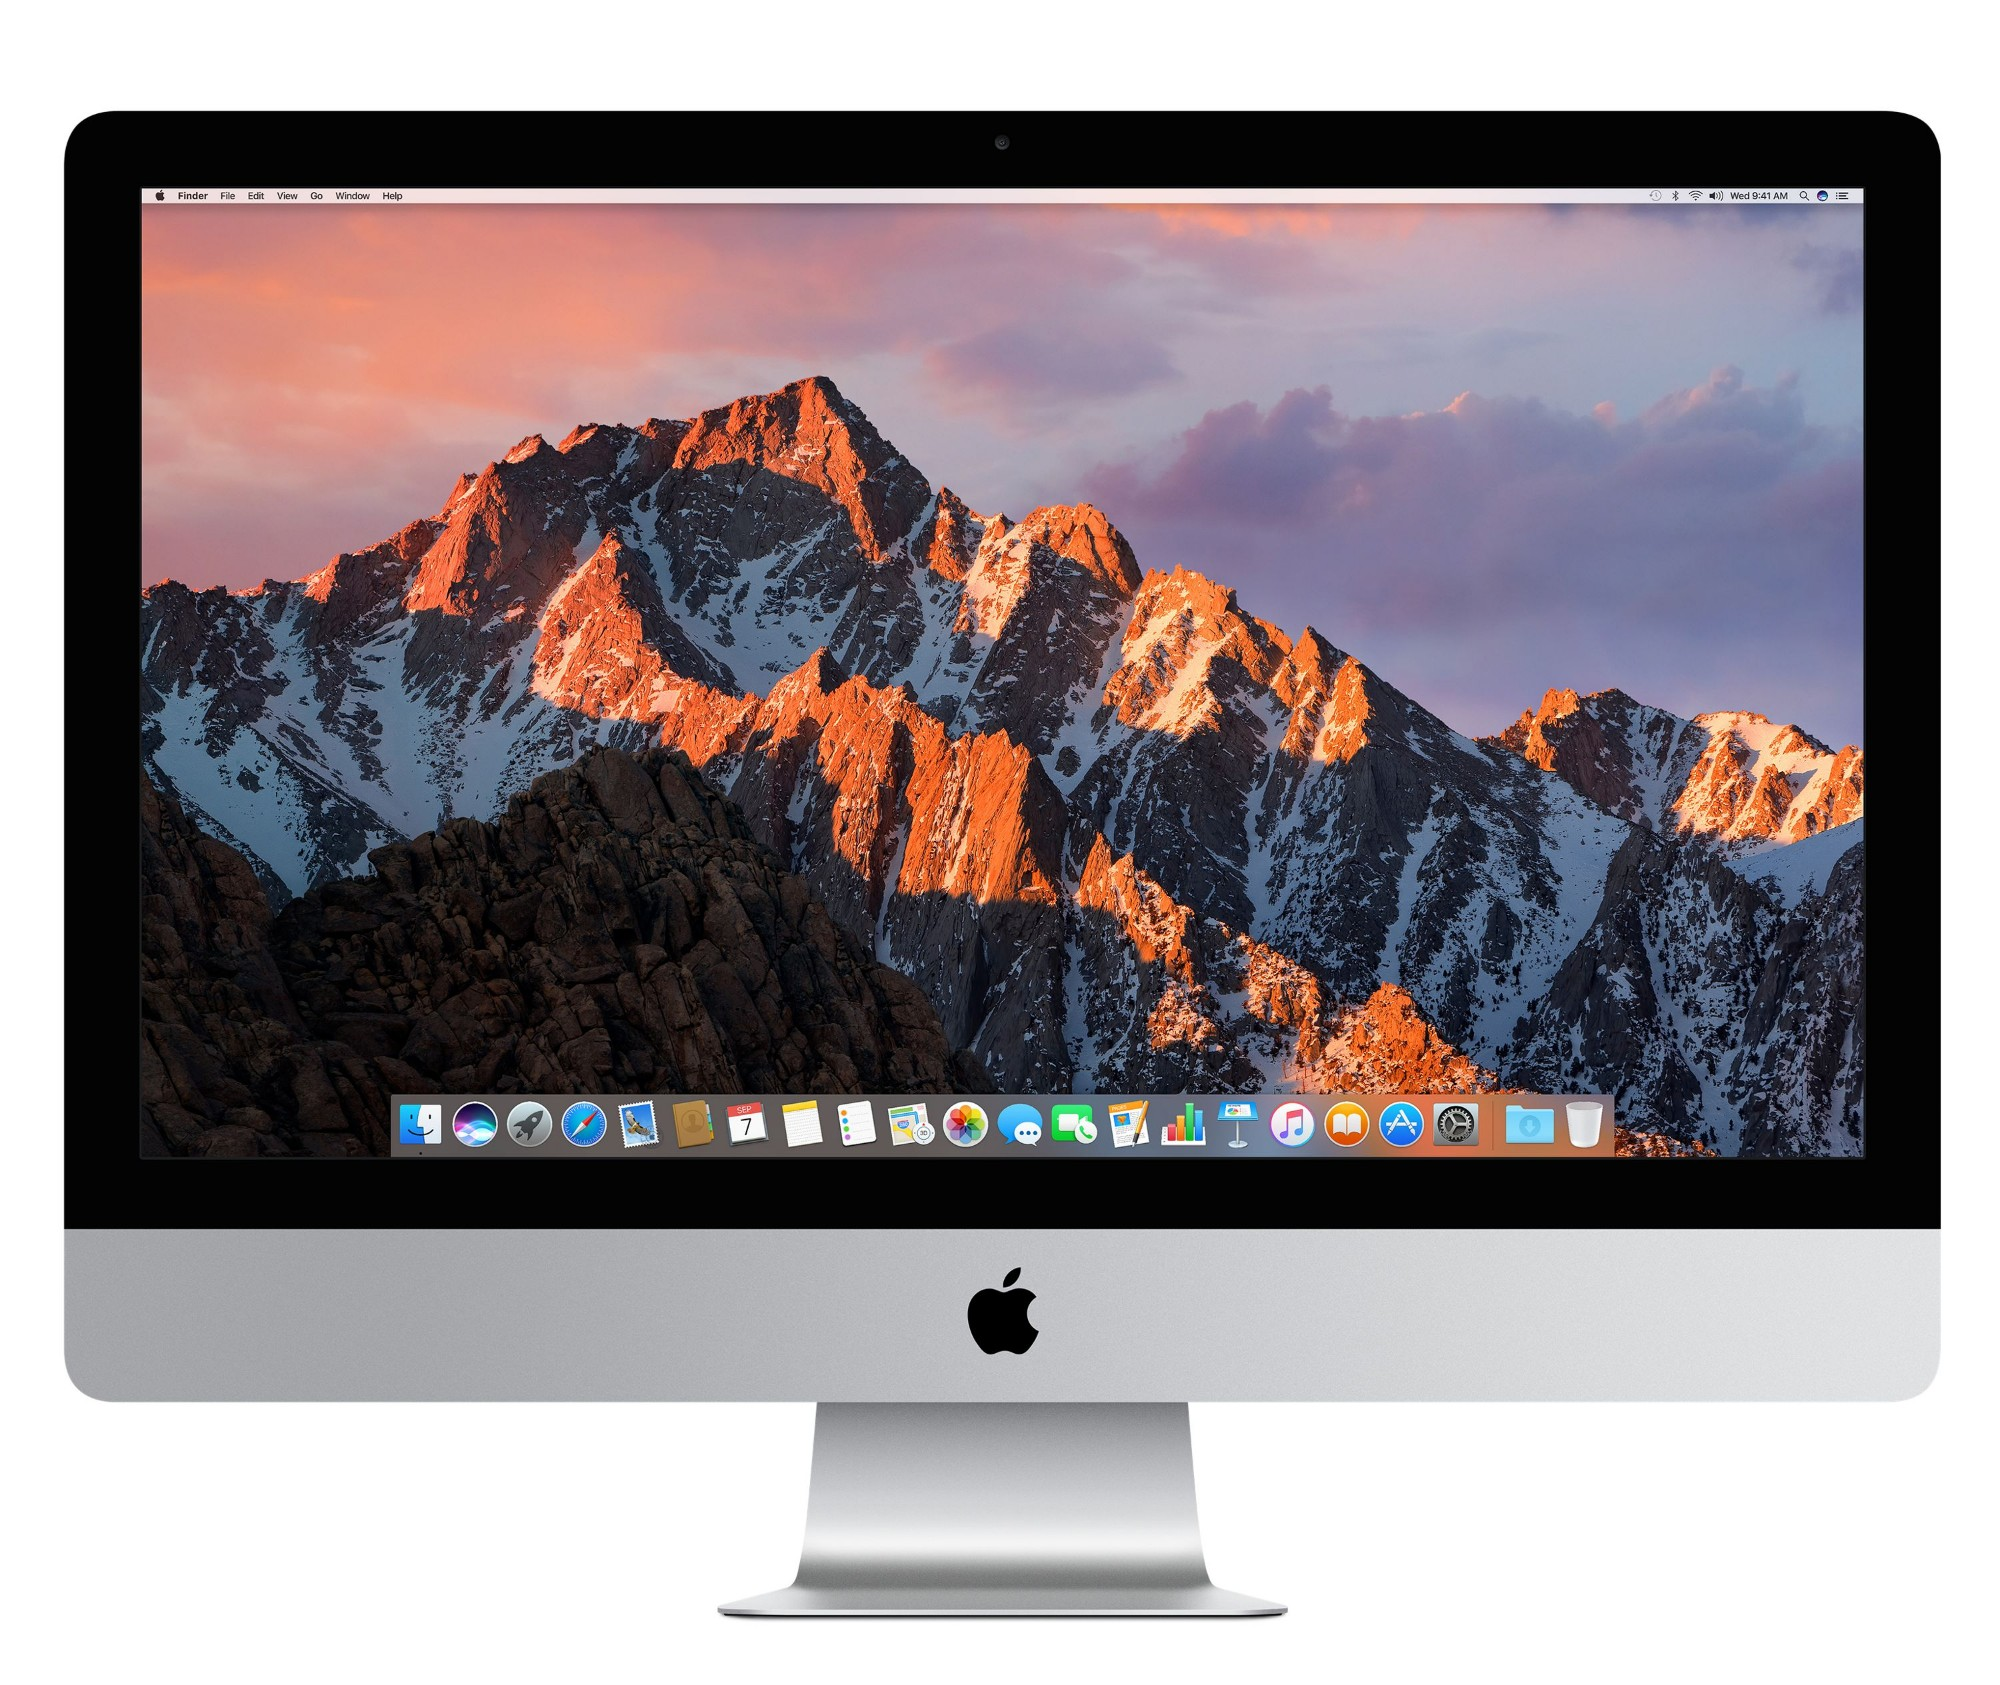 iMac - 21in - i5 2.3GHz - 16GB Ram - 1TB Fus 640 (z0th2000290279)